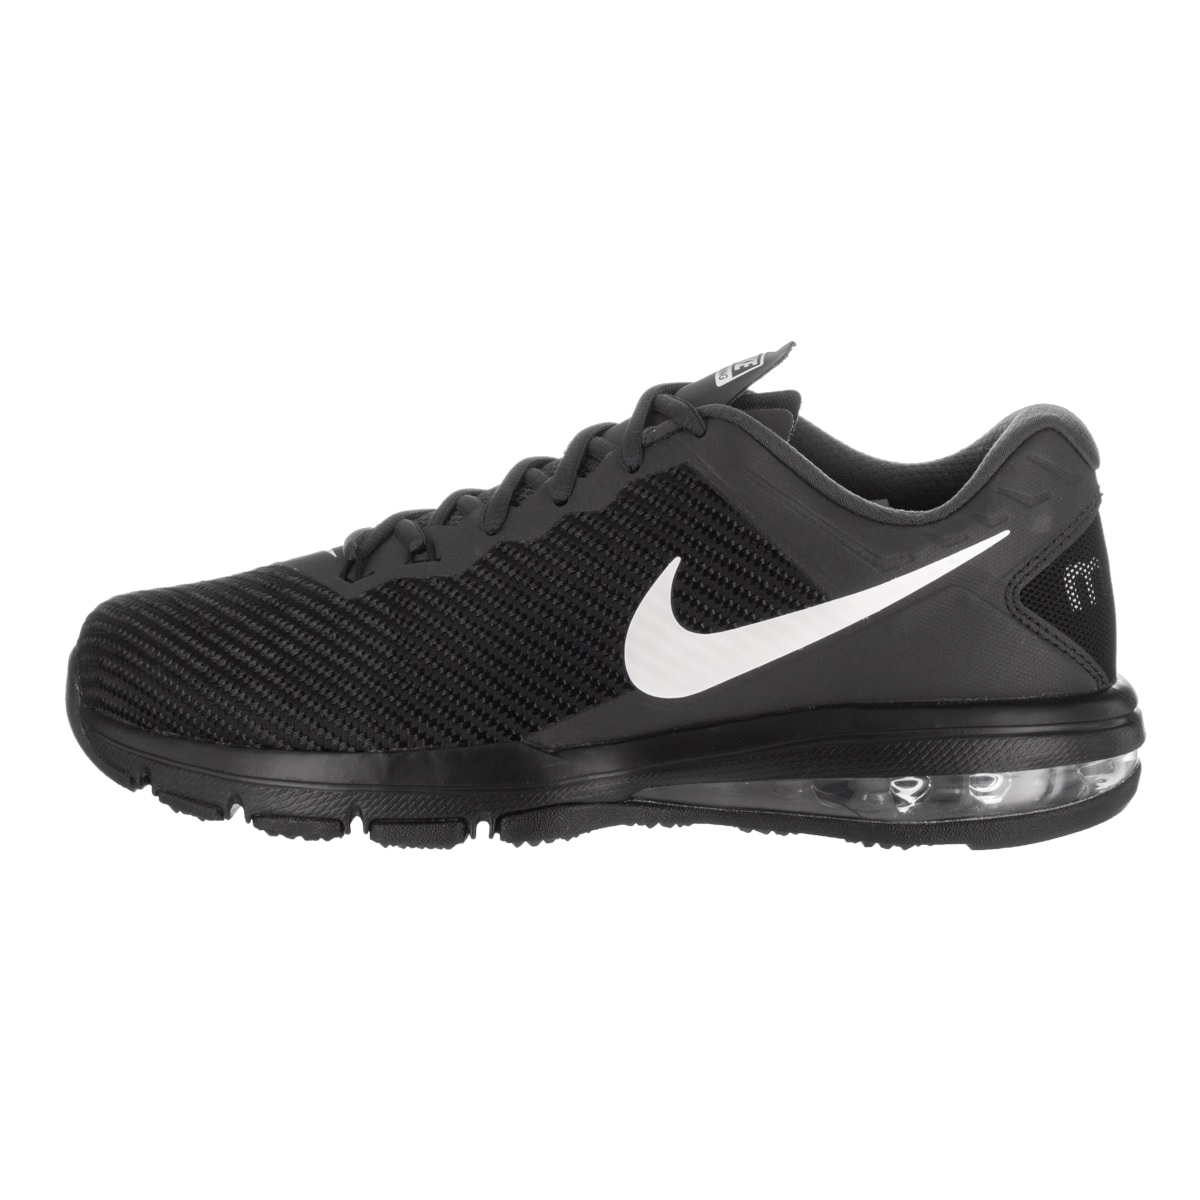 924a9448f4 Shop Nike Men's Air Max Full Ride Tr 1.5 Training Shoe - Free Shipping  Today - Overstock - 14532242